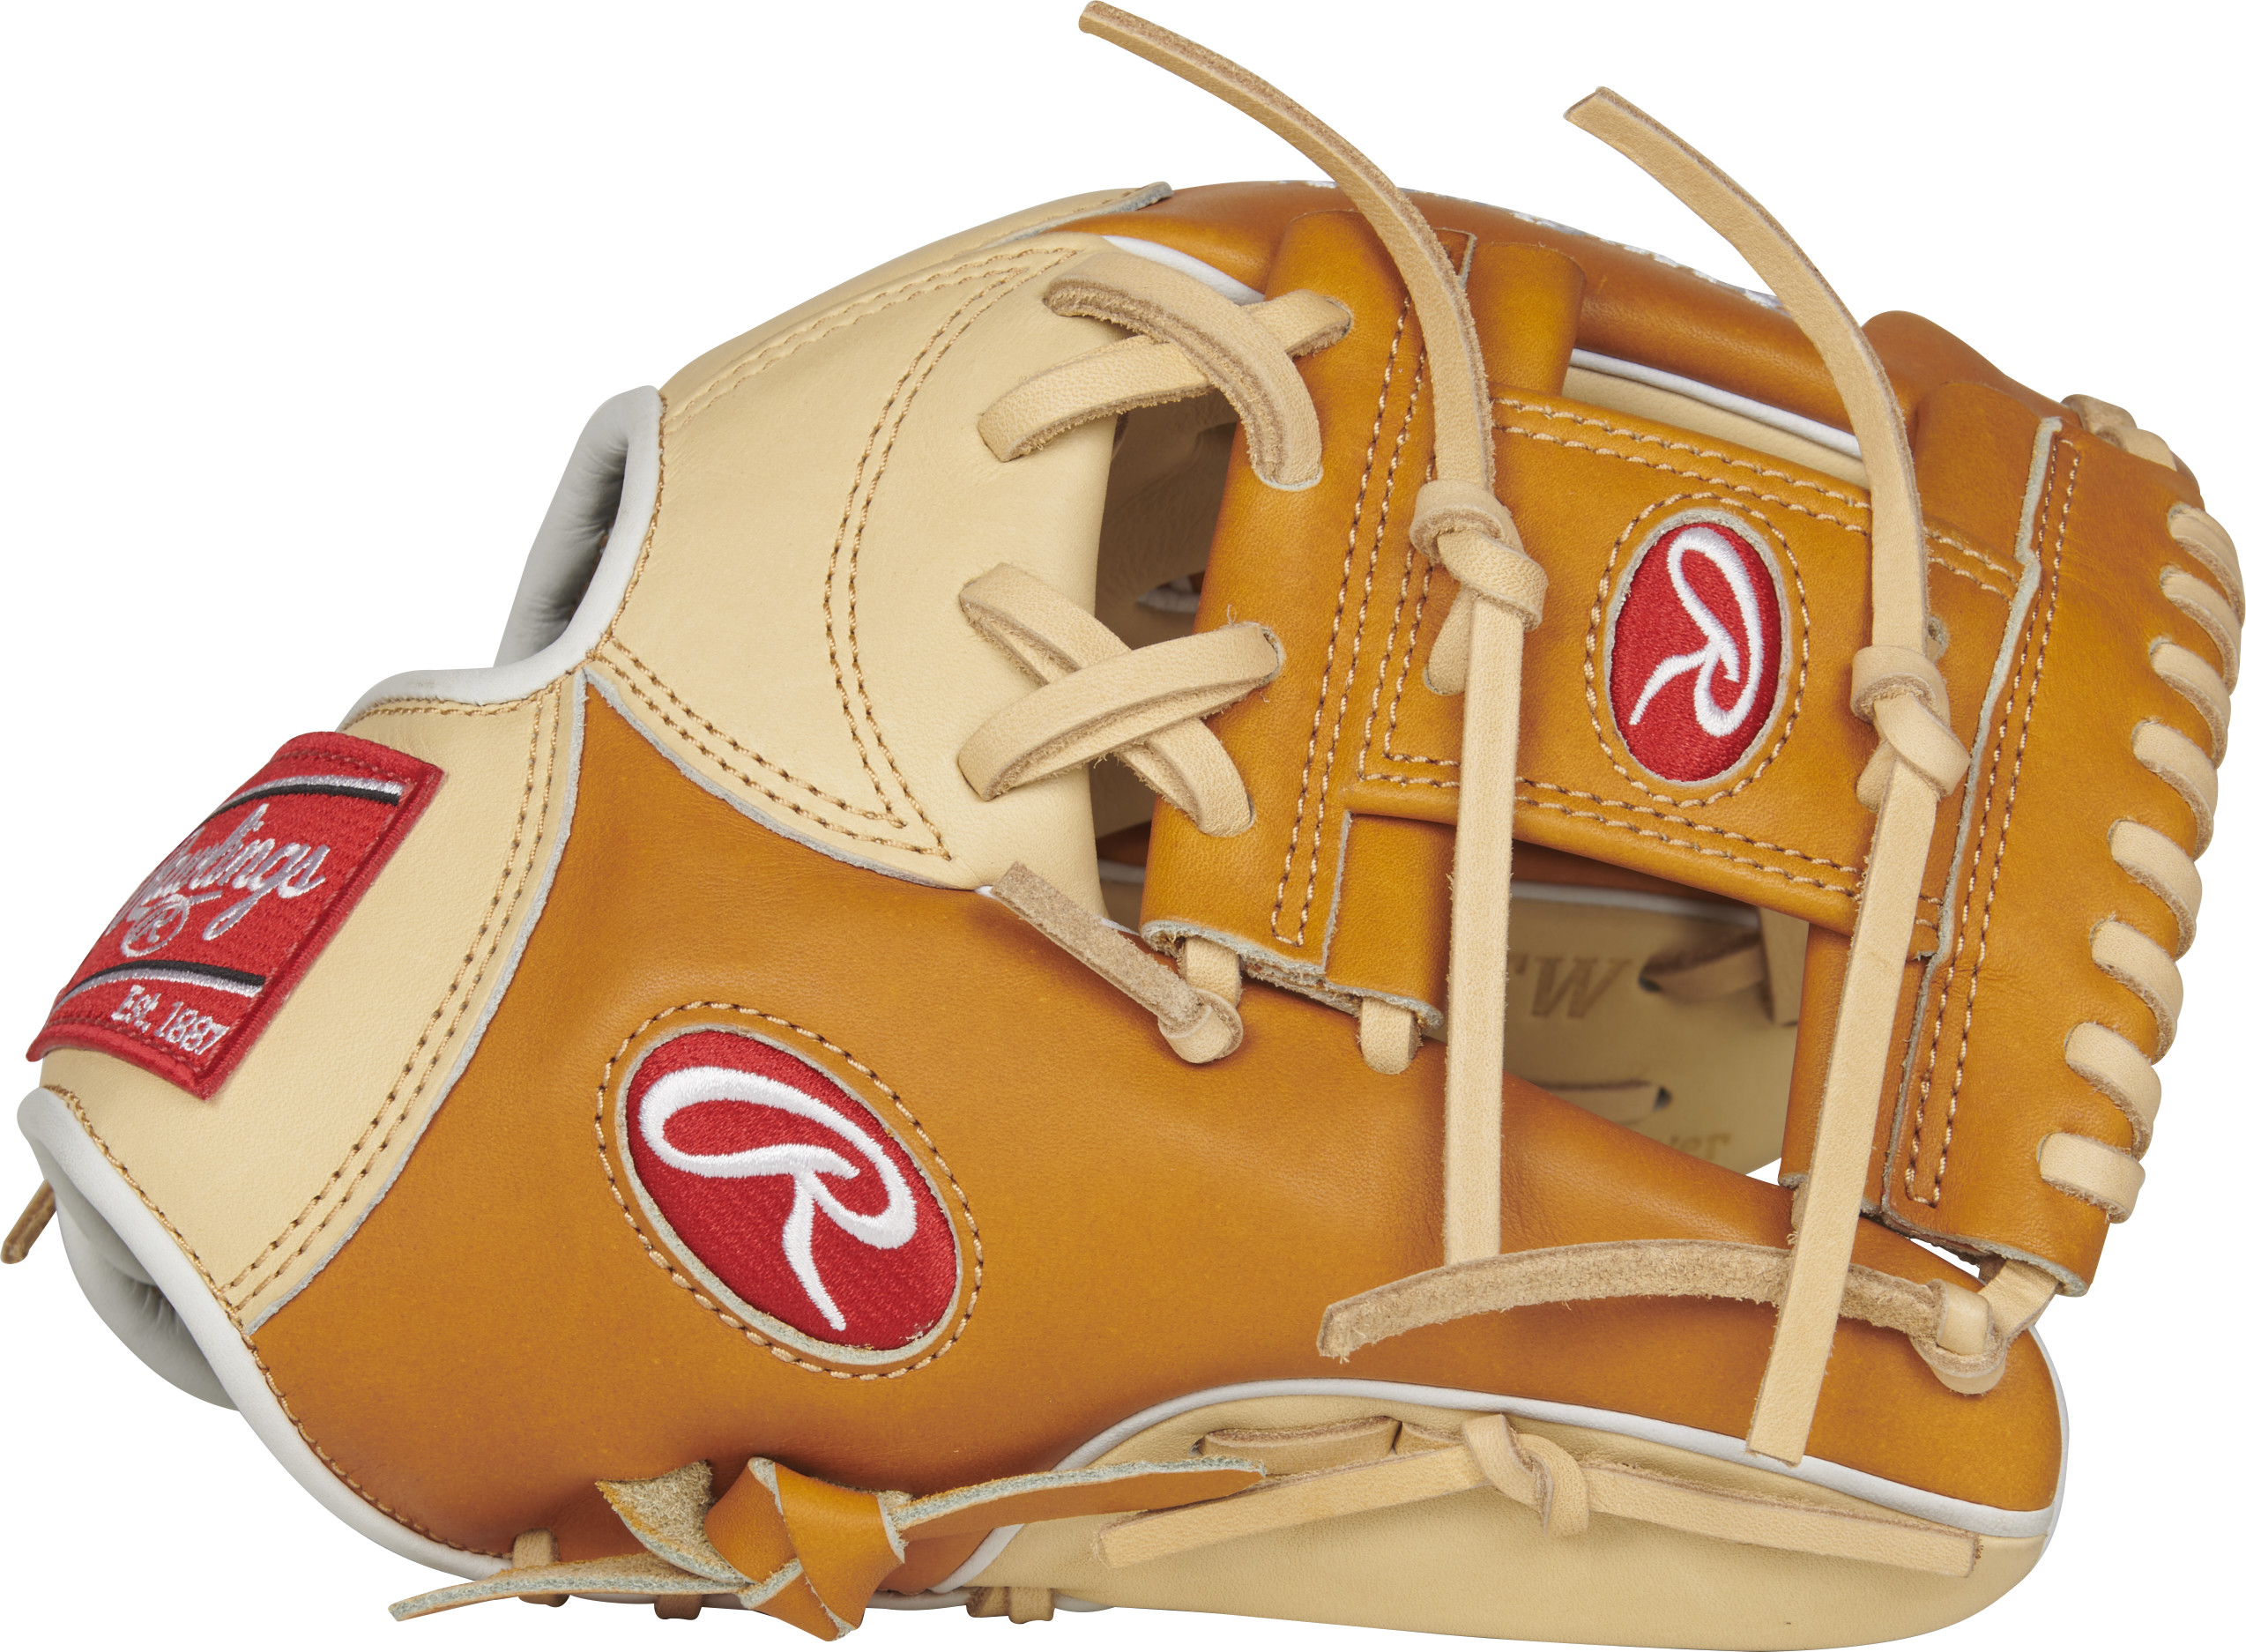 http://www.bestbatdeals.com/images/rawlingsgloves/PRONP4-2CTW-3.jpg